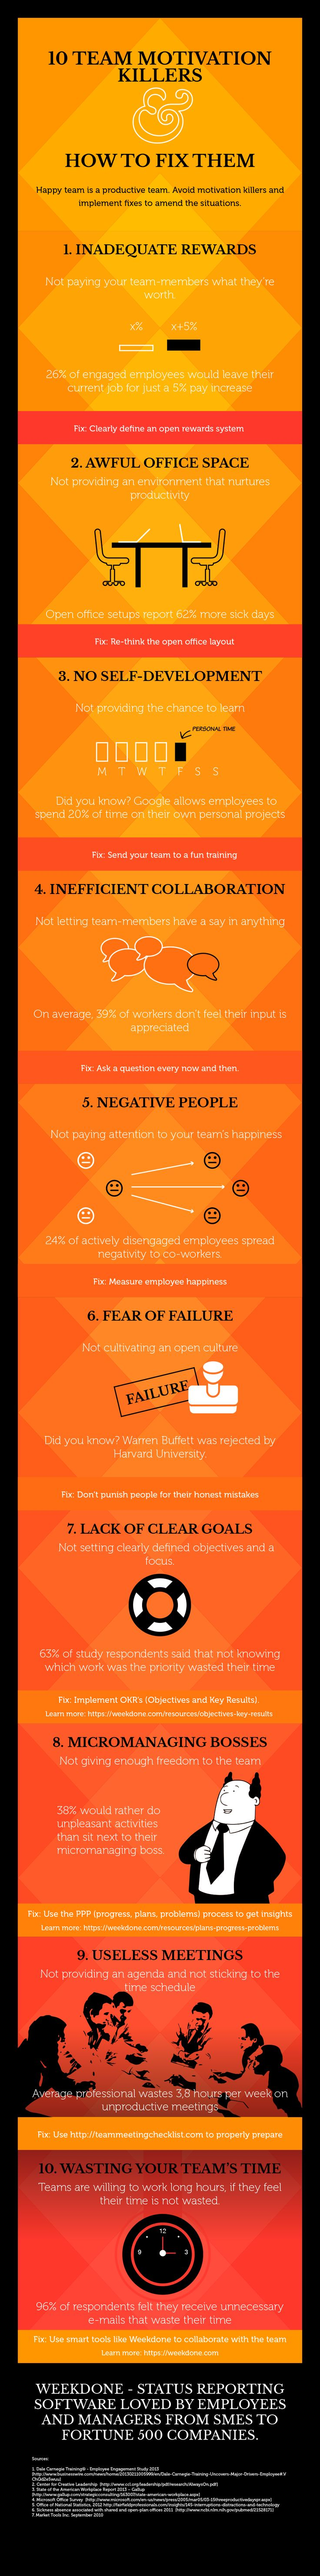 An Infographic Every Boss Should Read: 10 Team Motivation Killers and How To Fix Them. #infographic